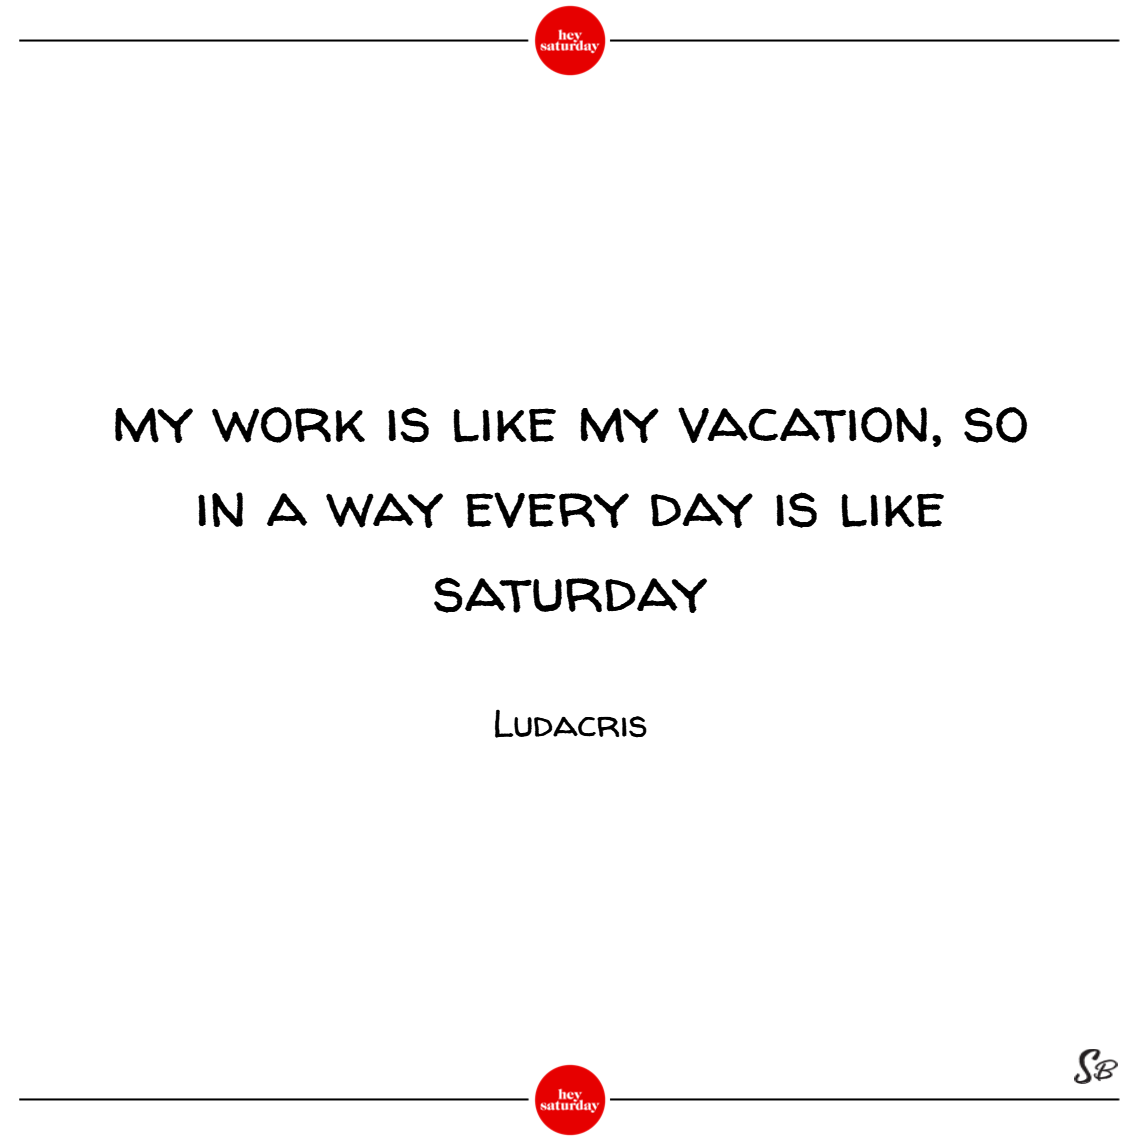 My work is like my vacation, so in a way every day is like saturday. – ludacris (1)